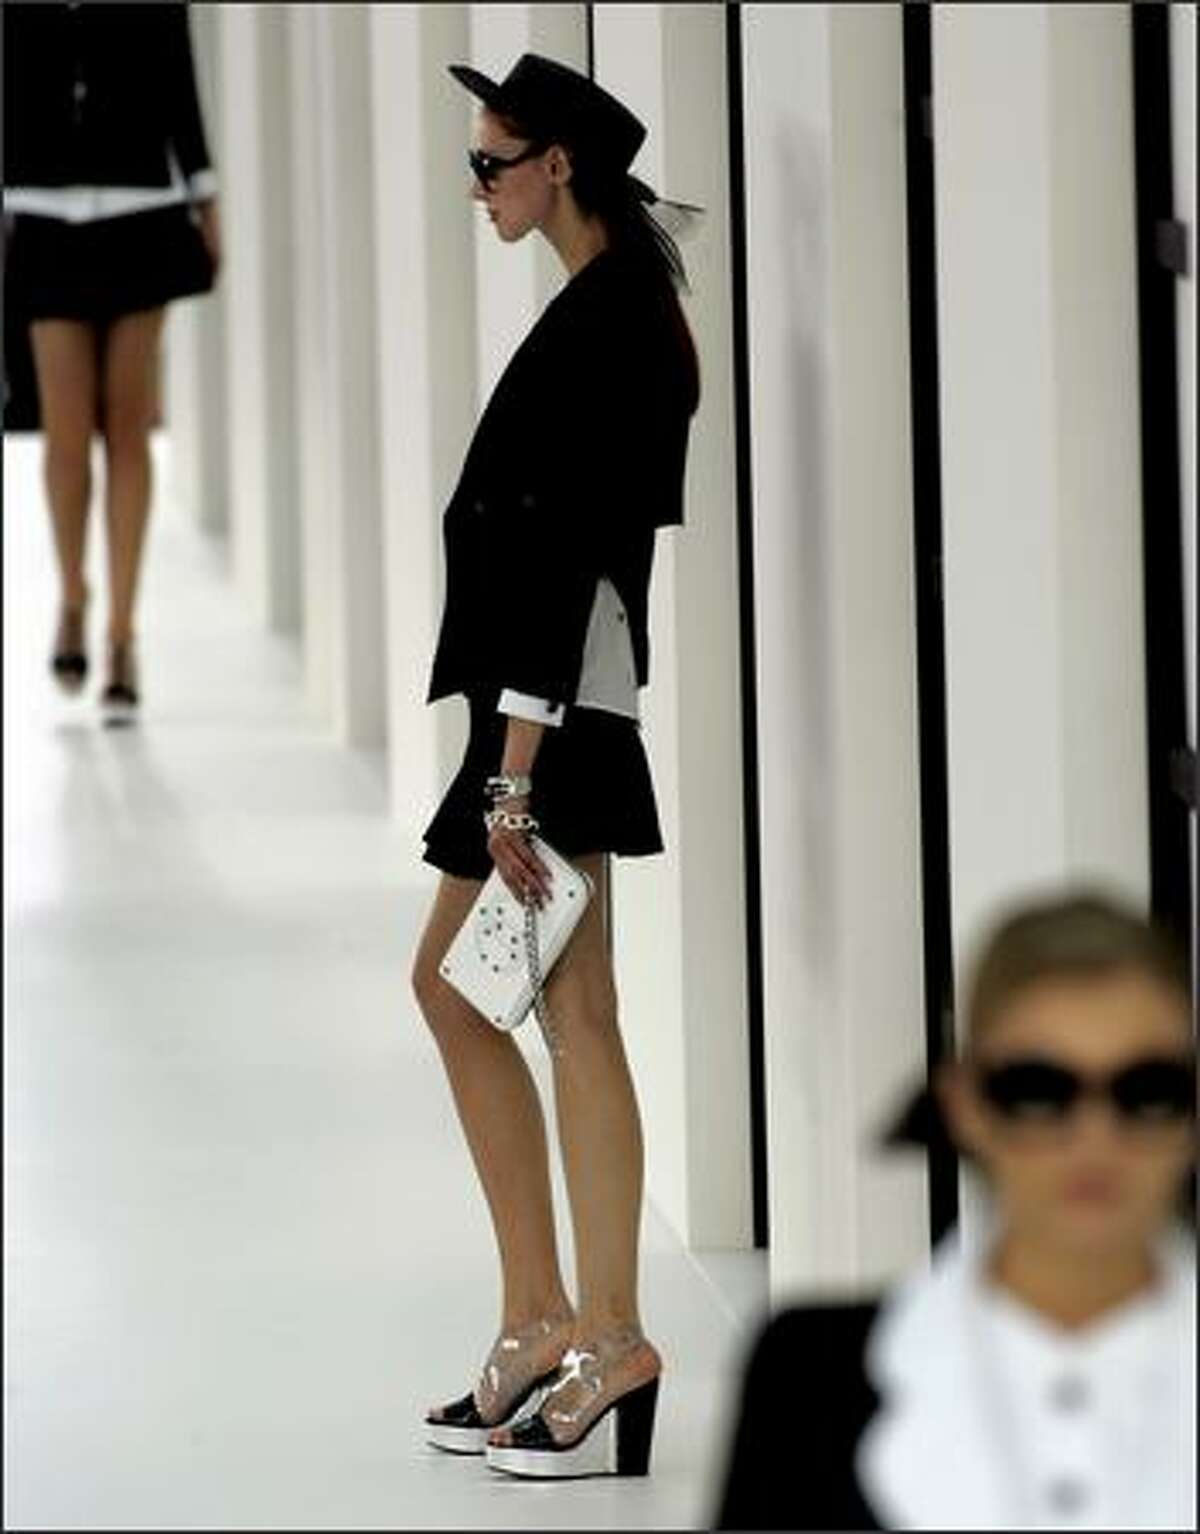 A model presents a creation designed by German fashion designer Karl Lagerfeld for Chanel's spring-summer 2007 ready to wear collection, Friday Oct. 6, 2006 in Paris. (AP Photo/Jacques Brinon)